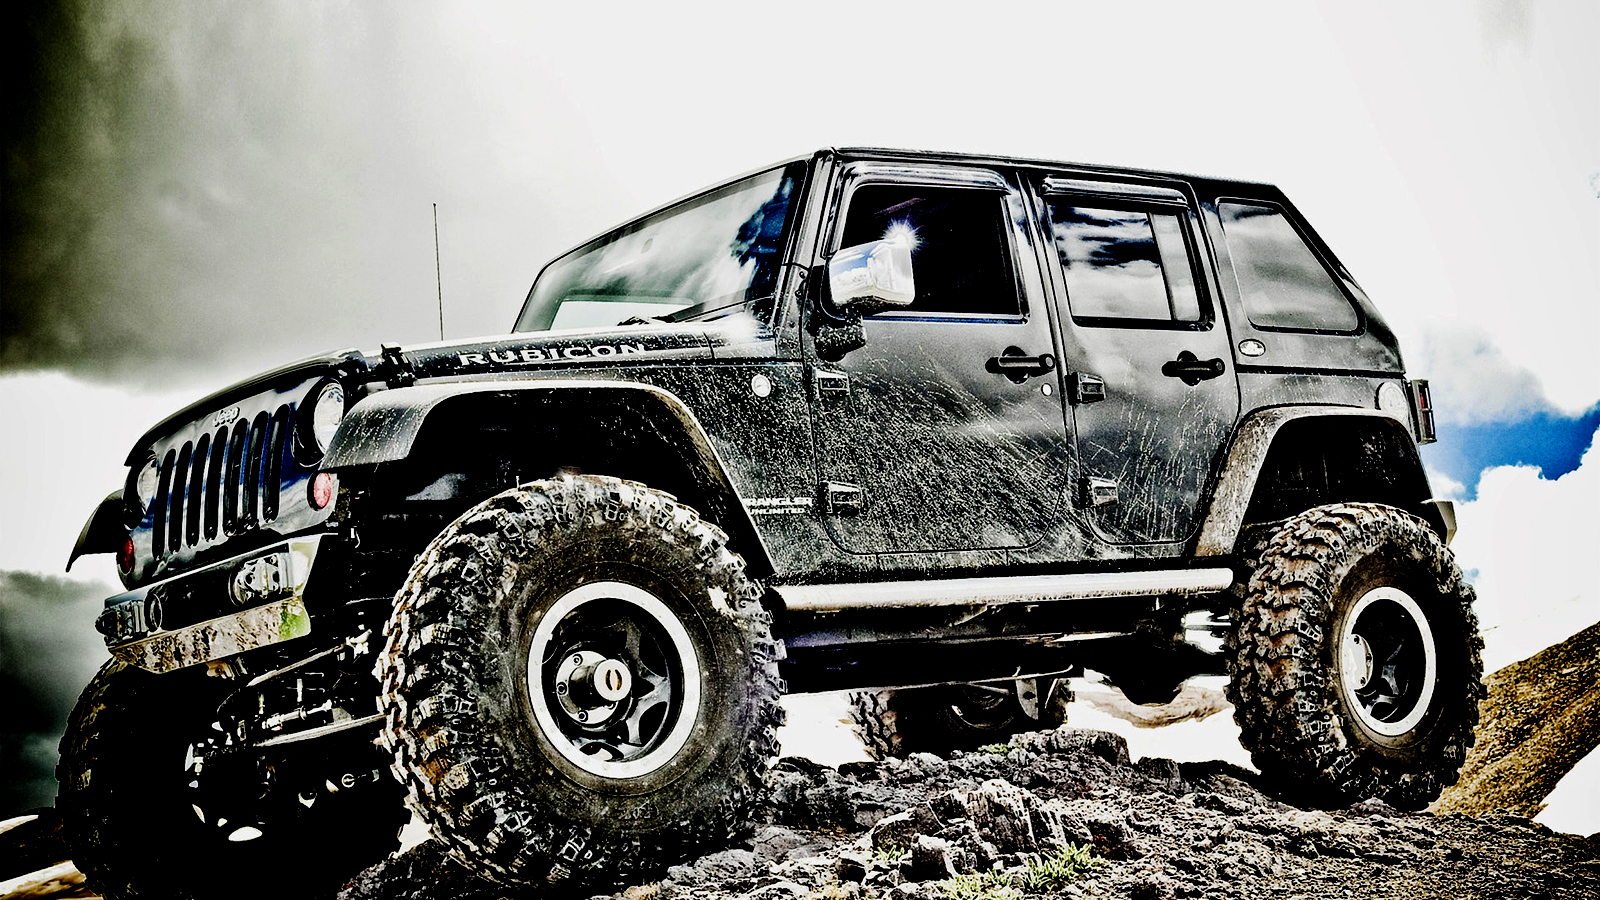 off road vehicles 4x4 jeeps hd wallpapers hd wallpapers backgrounds photos pictures image pc. Black Bedroom Furniture Sets. Home Design Ideas